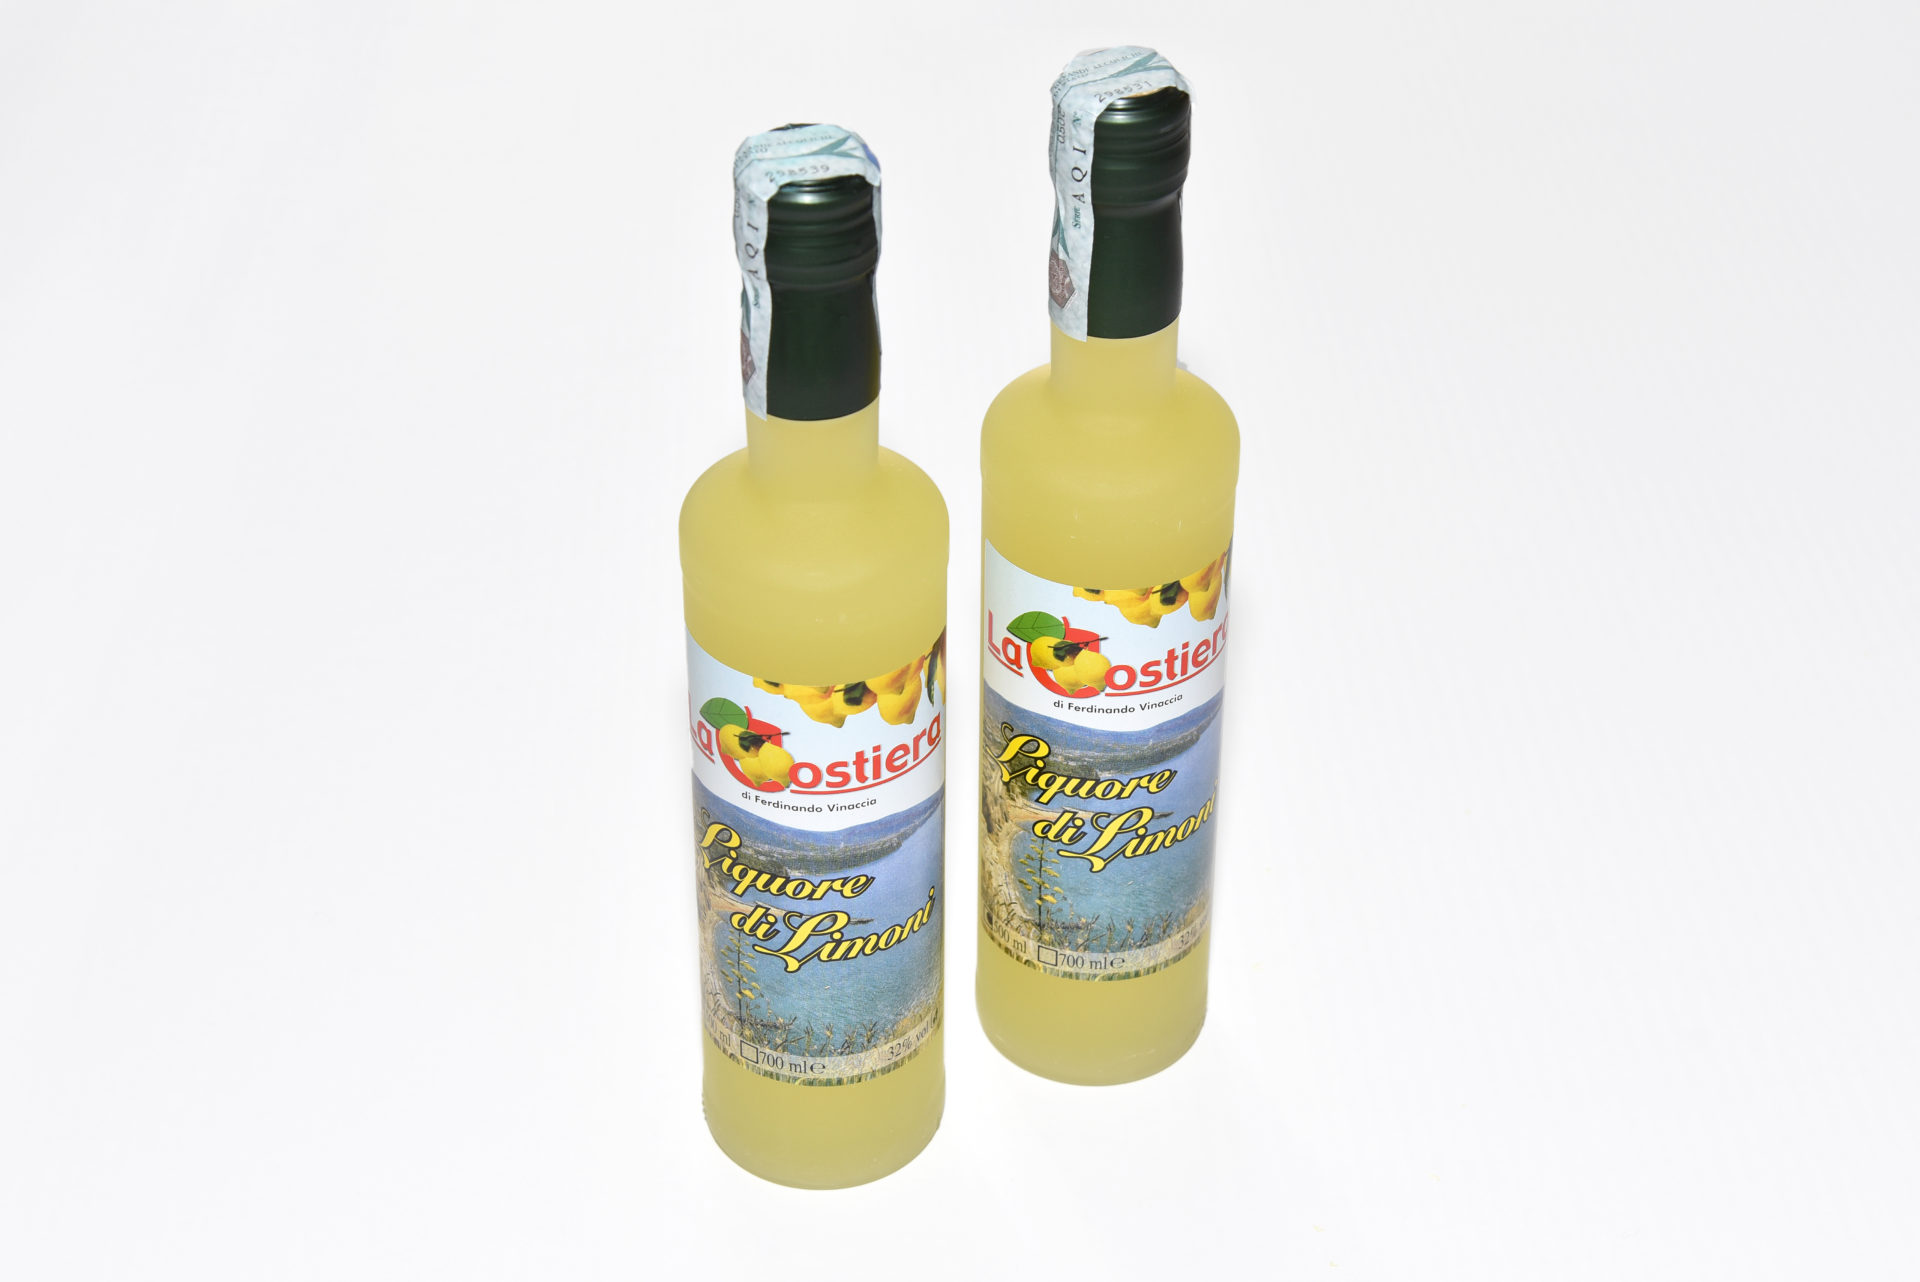 Lemon Liqueur (Limoncello)